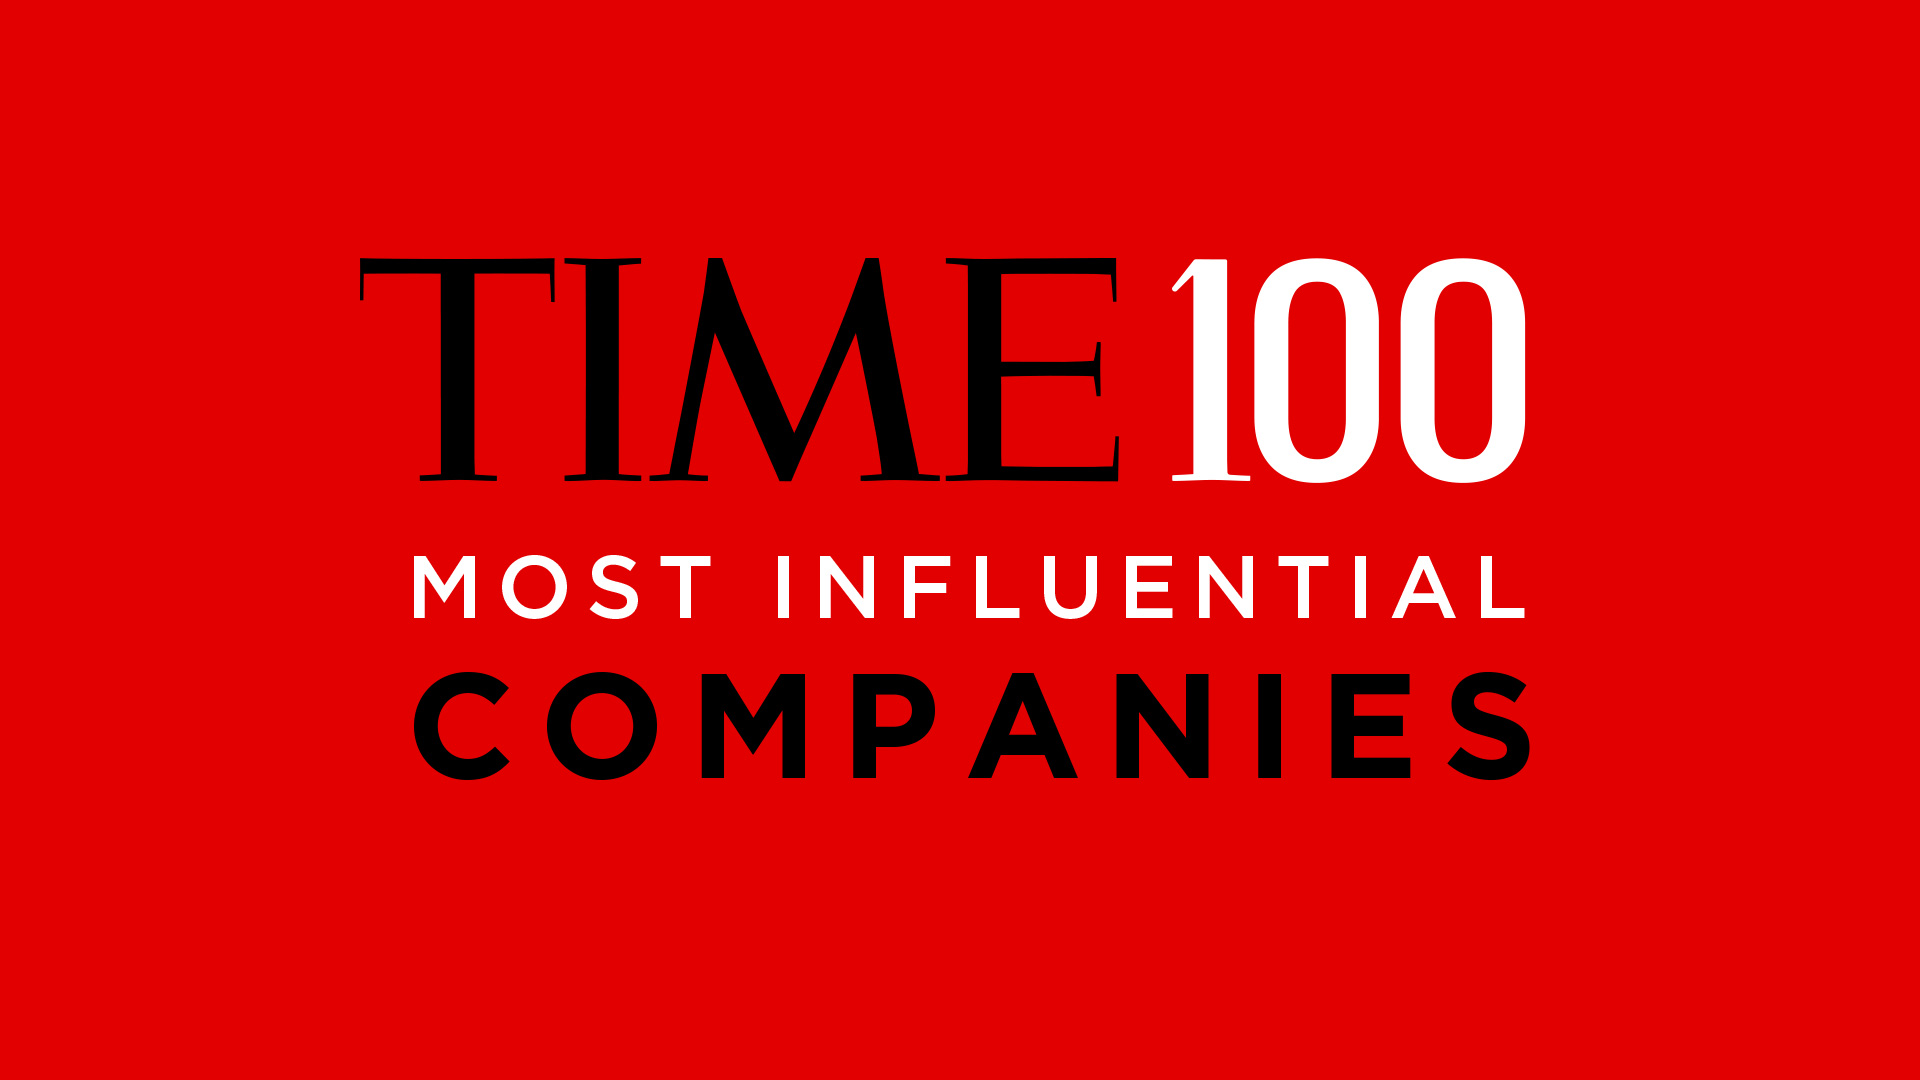 Time's 100 Most Influential Companies in the World